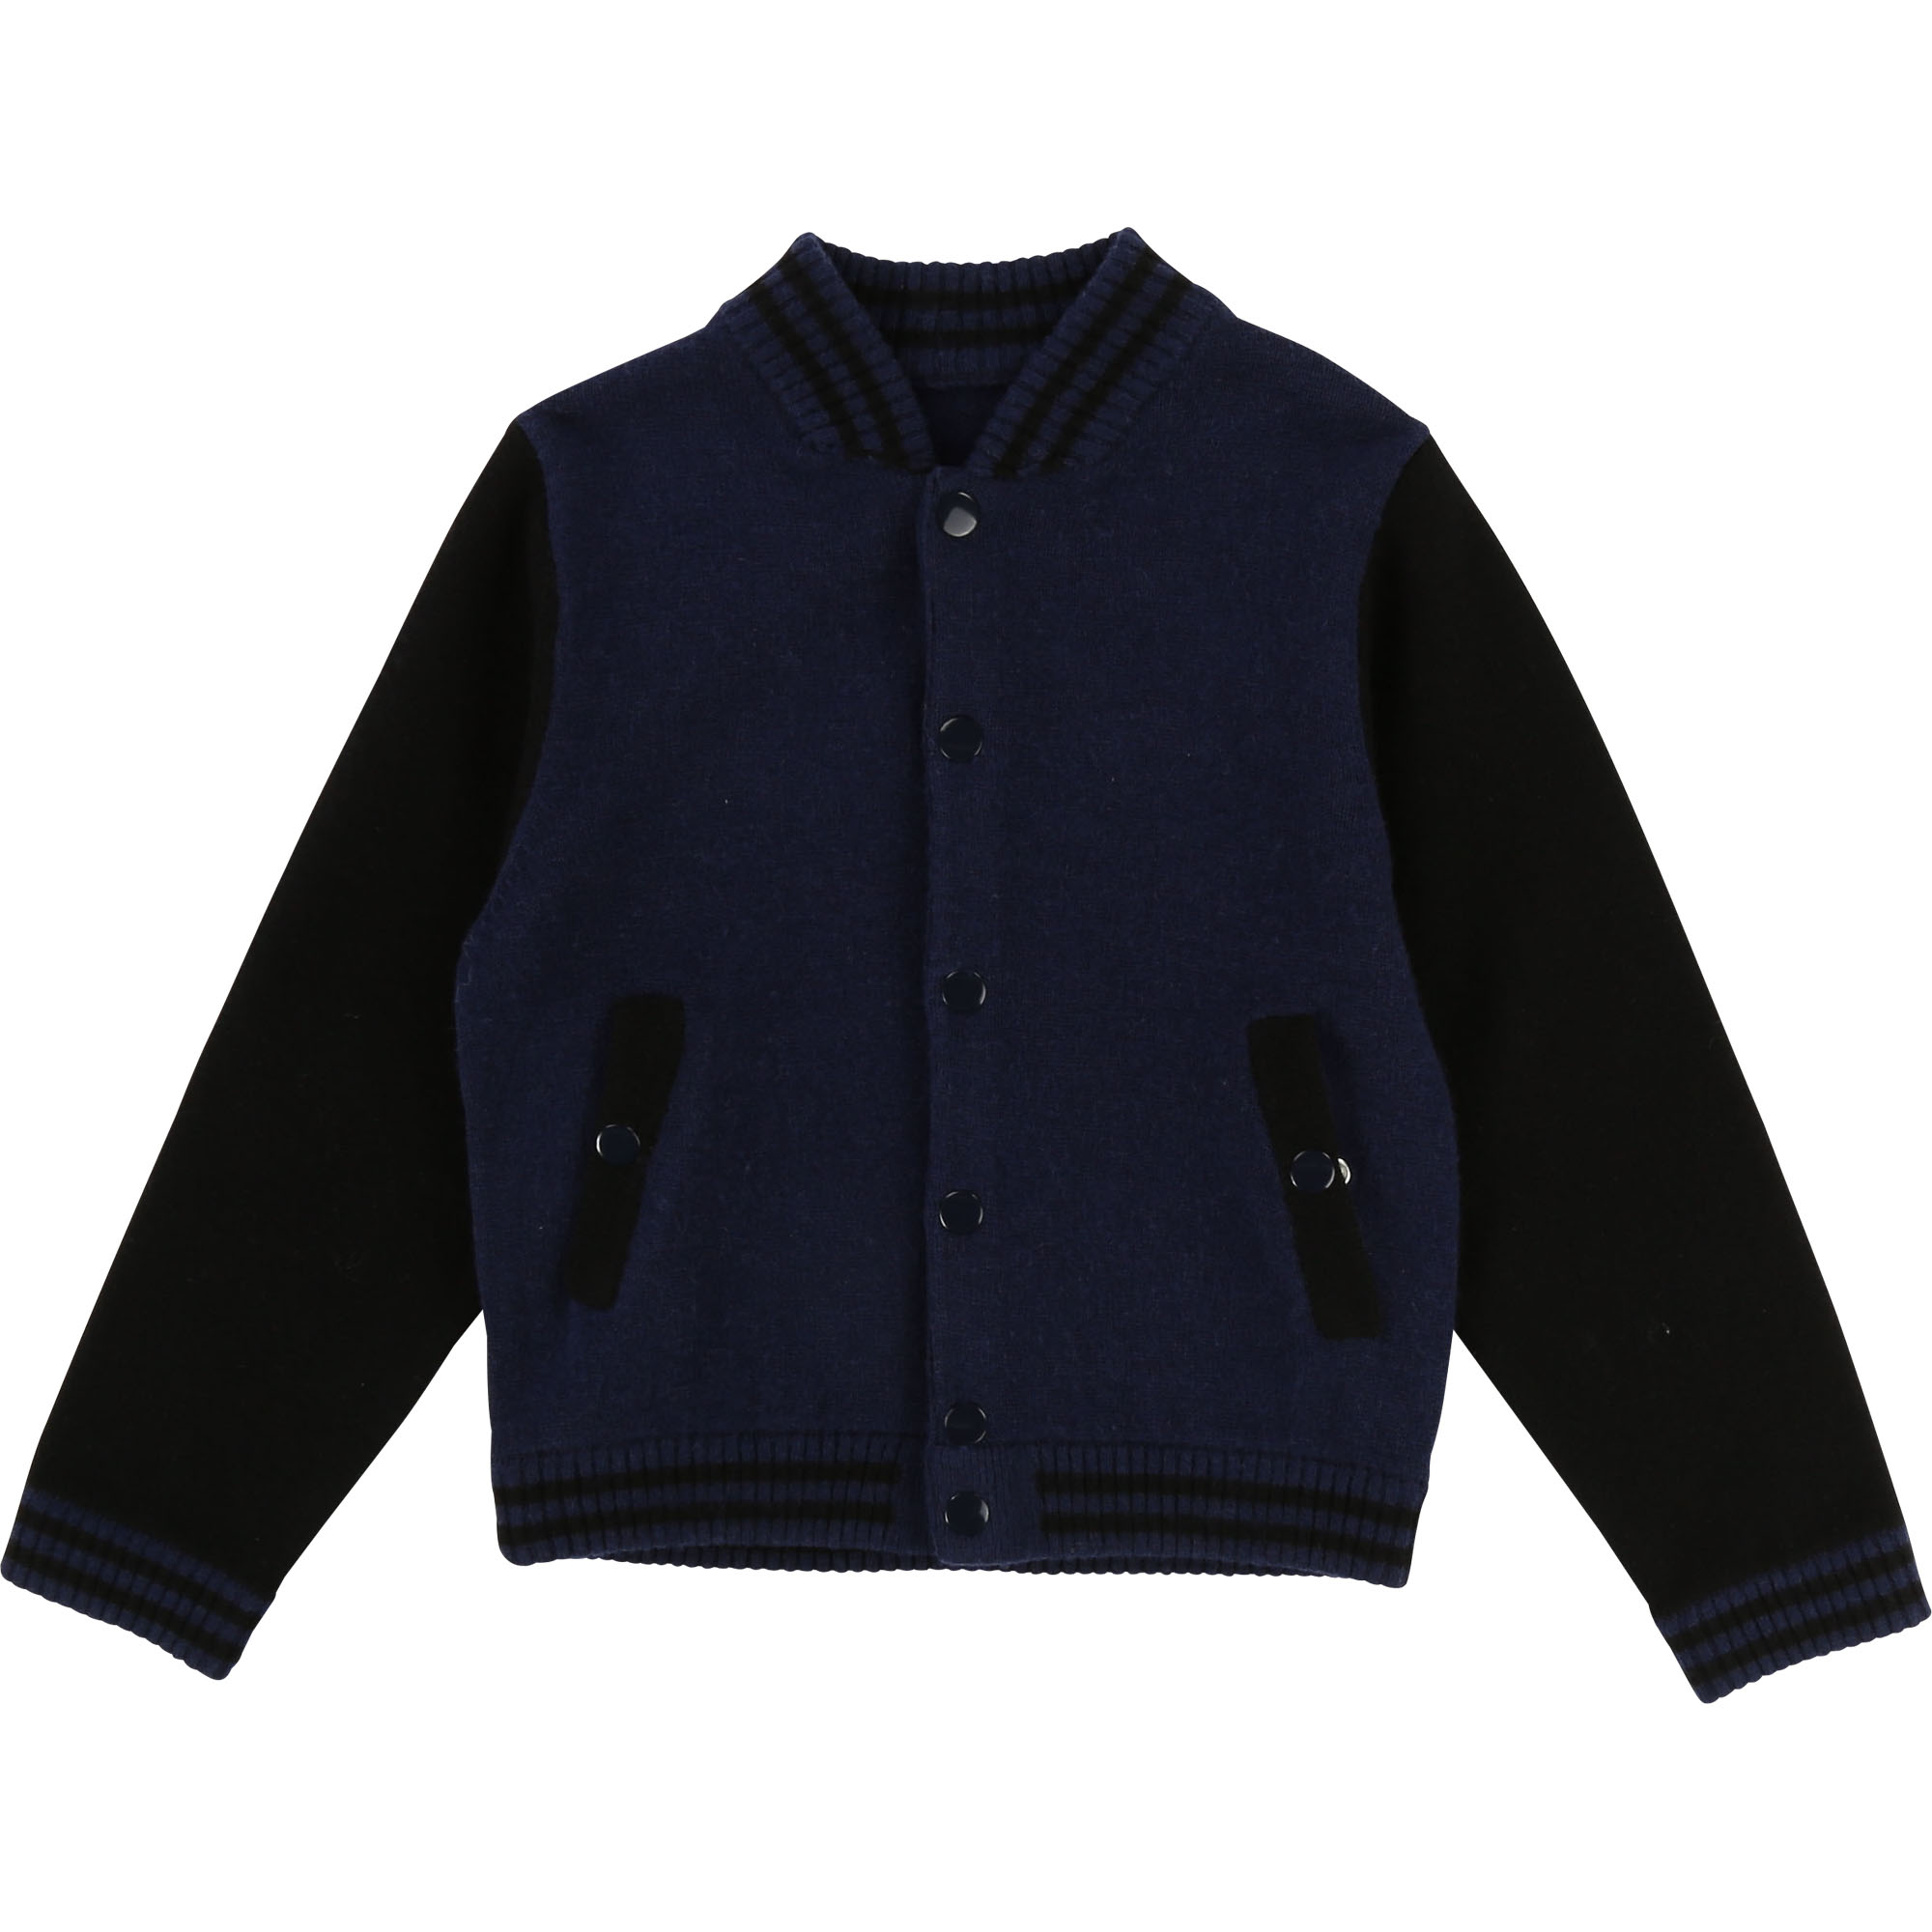 Two-tone knit cardigan LITTLE MARC JACOBS for BOY